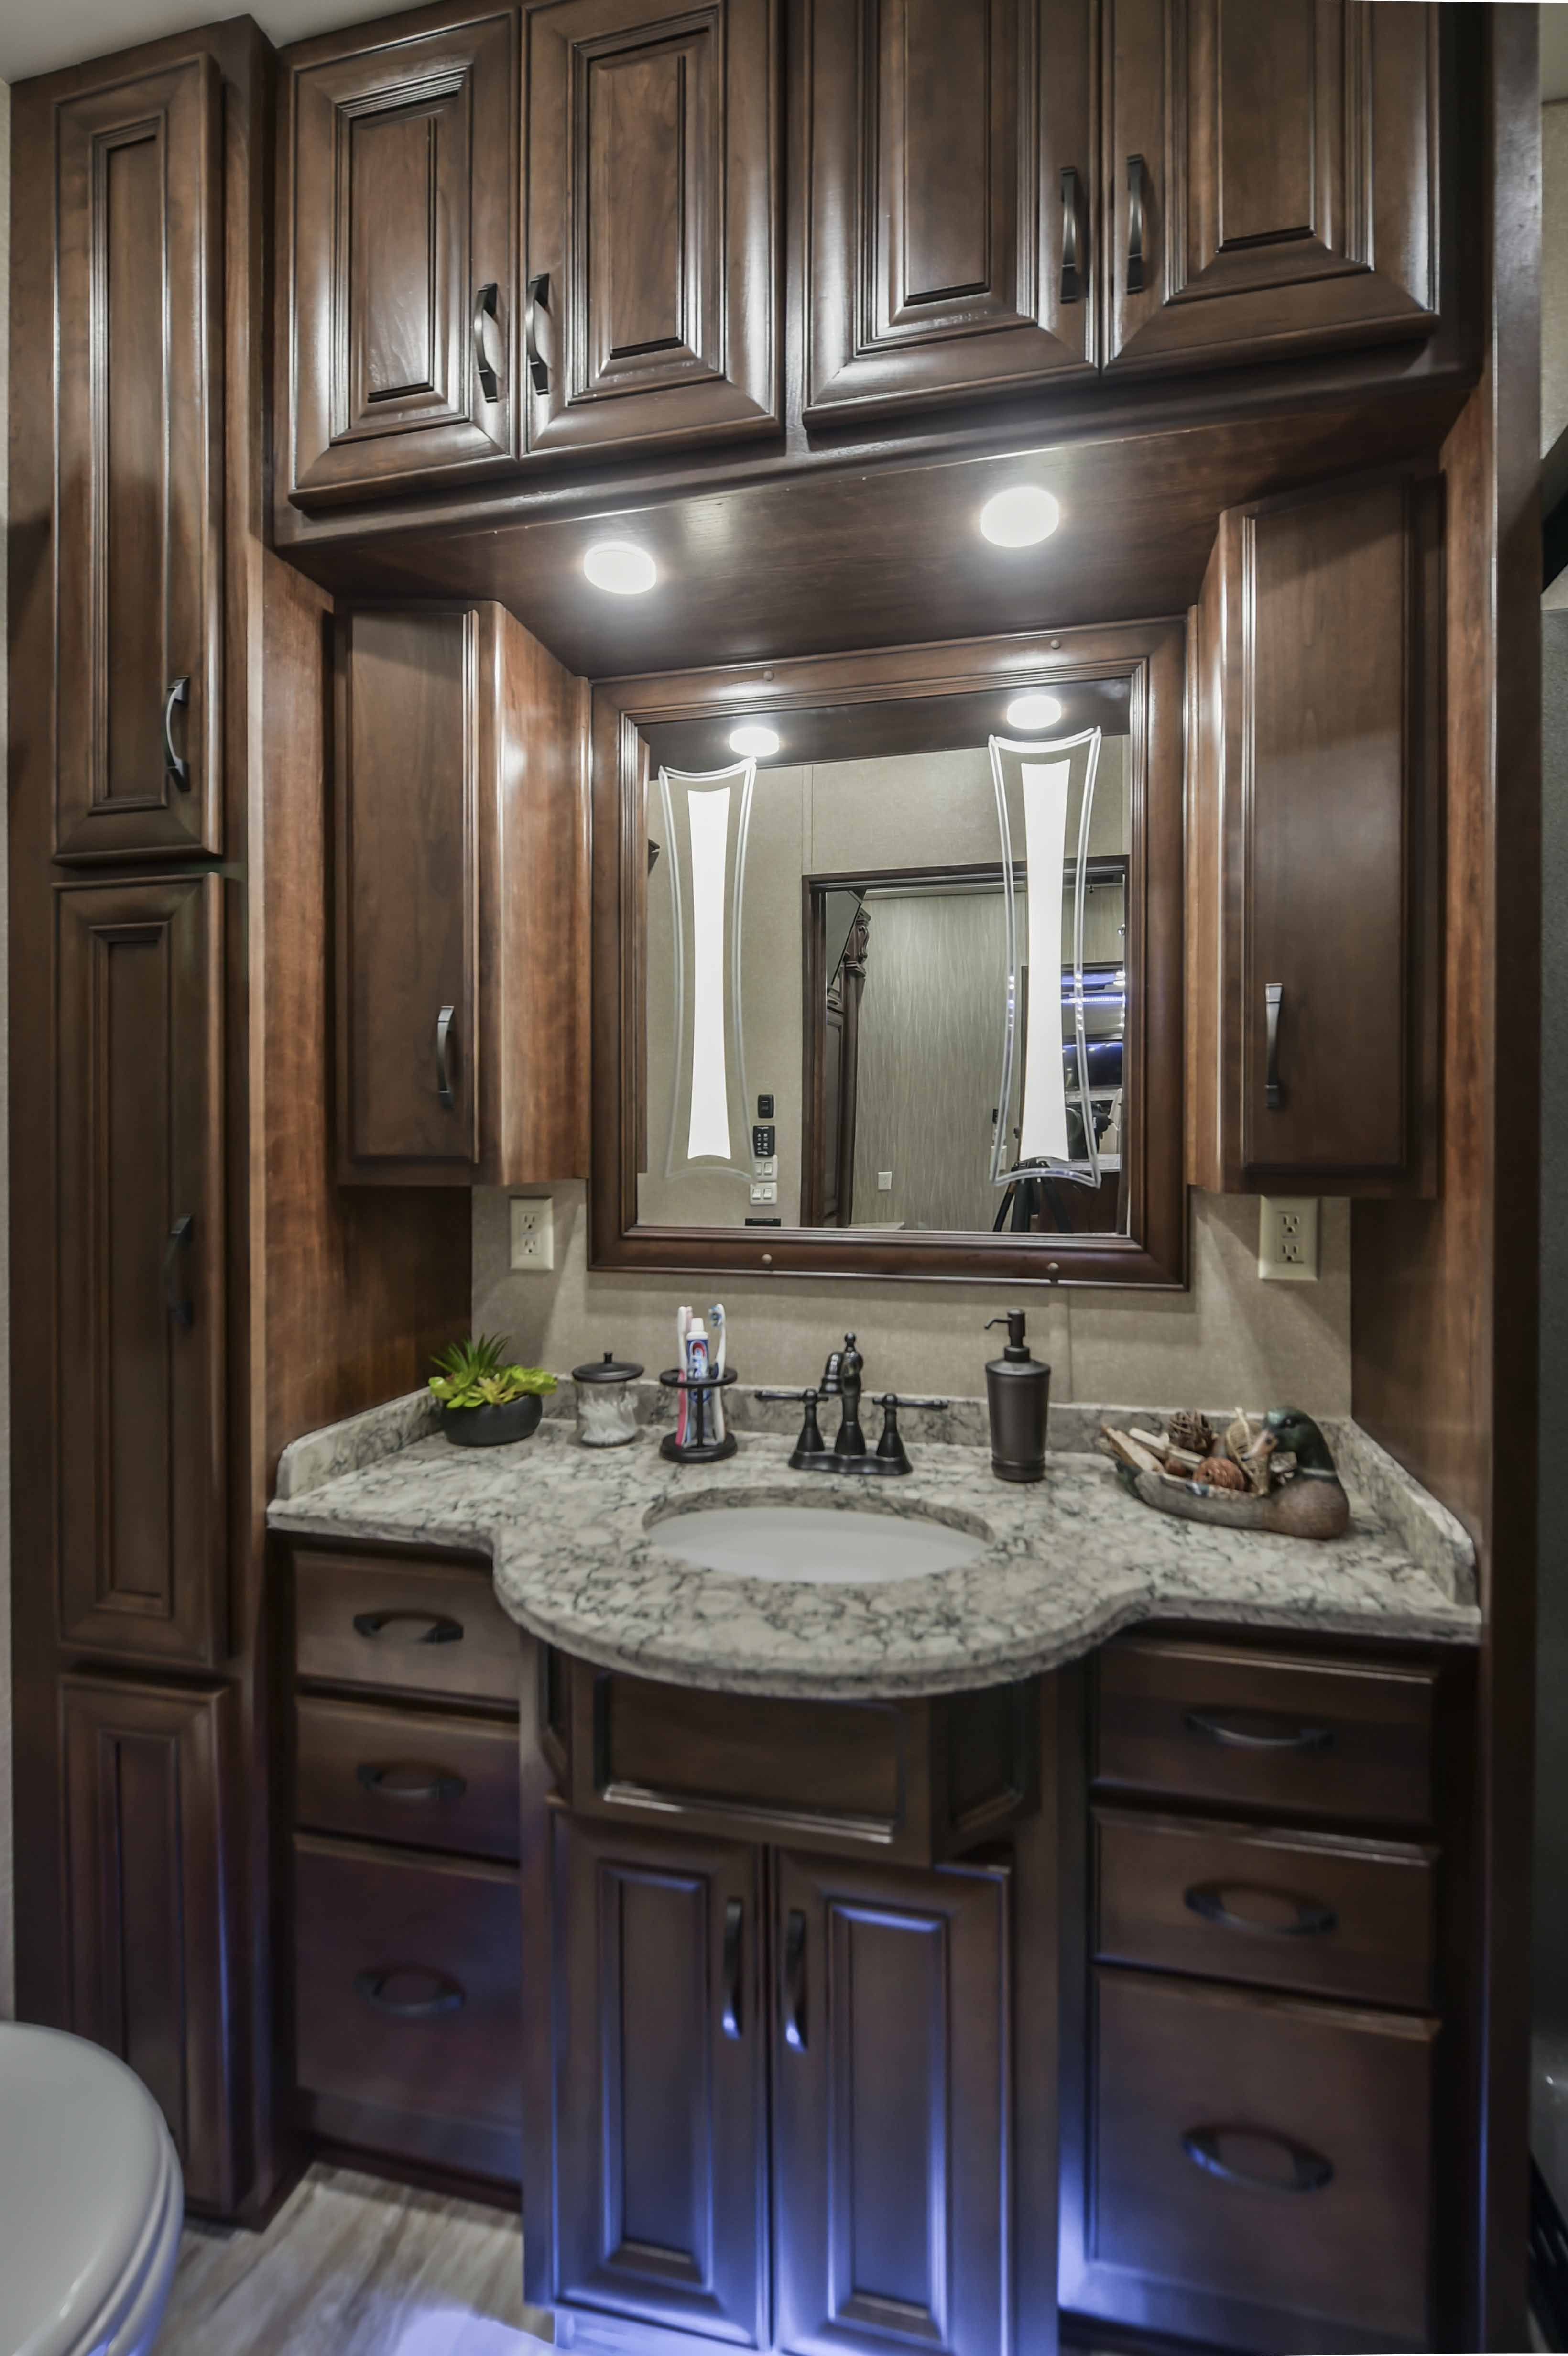 2018 DRV Elite Suites 44 Nashville Bathroom Vanity #DRVSuites #nashville # Bathrooms #bathroomdesign #fulltimerv #fulltimerving